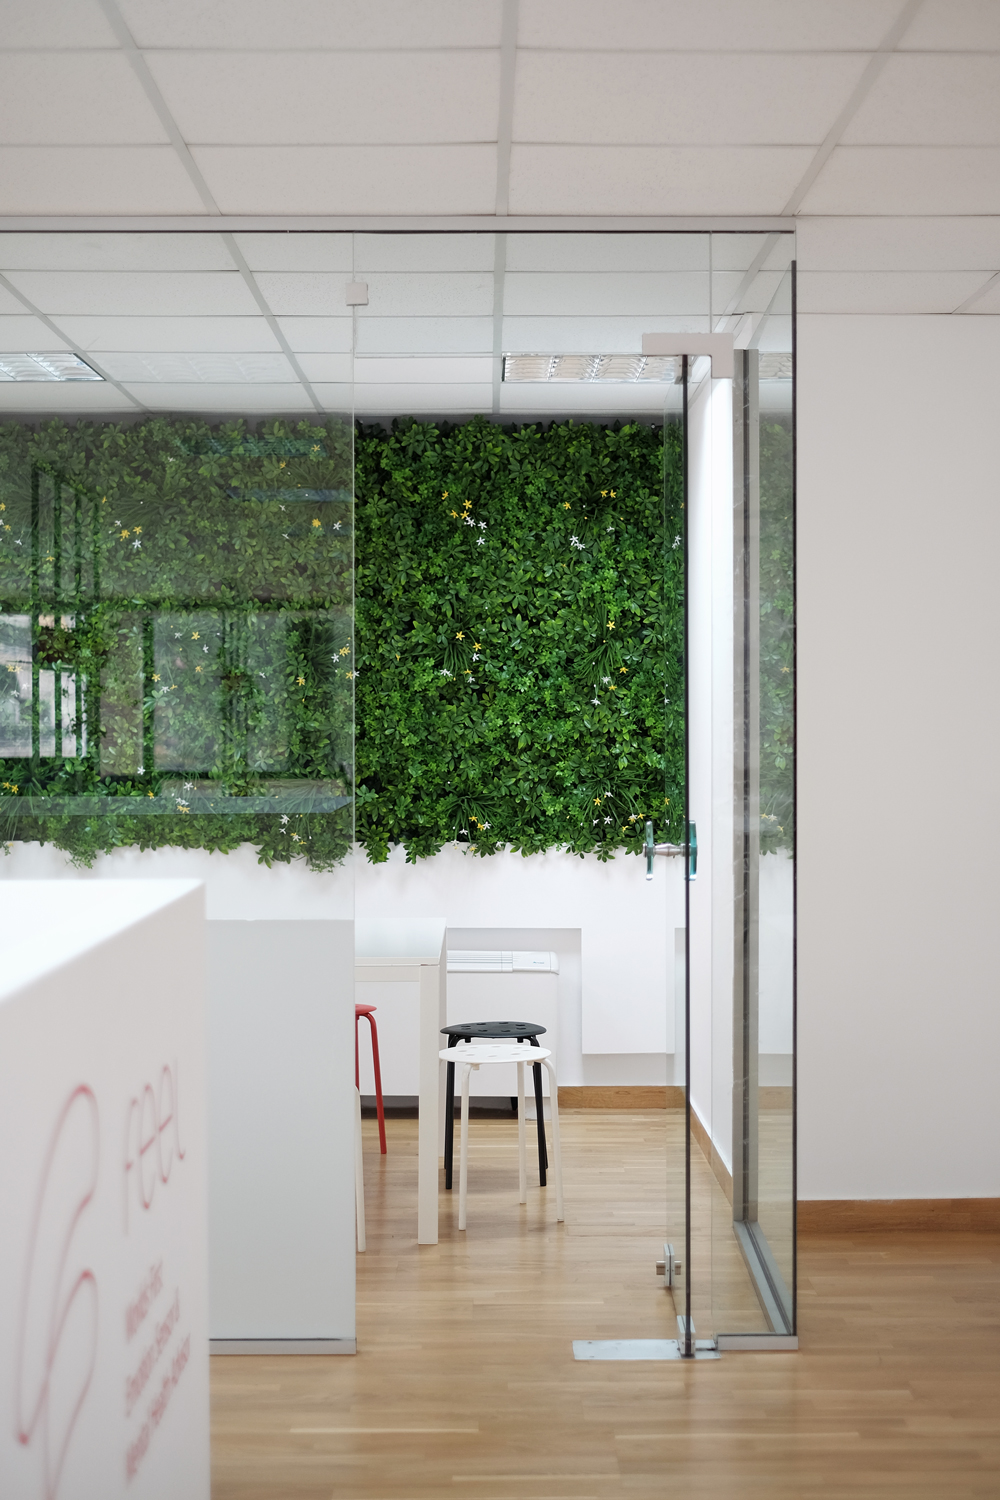 Sentio Solutions – Feel wristband offices,  Aplusm  architects